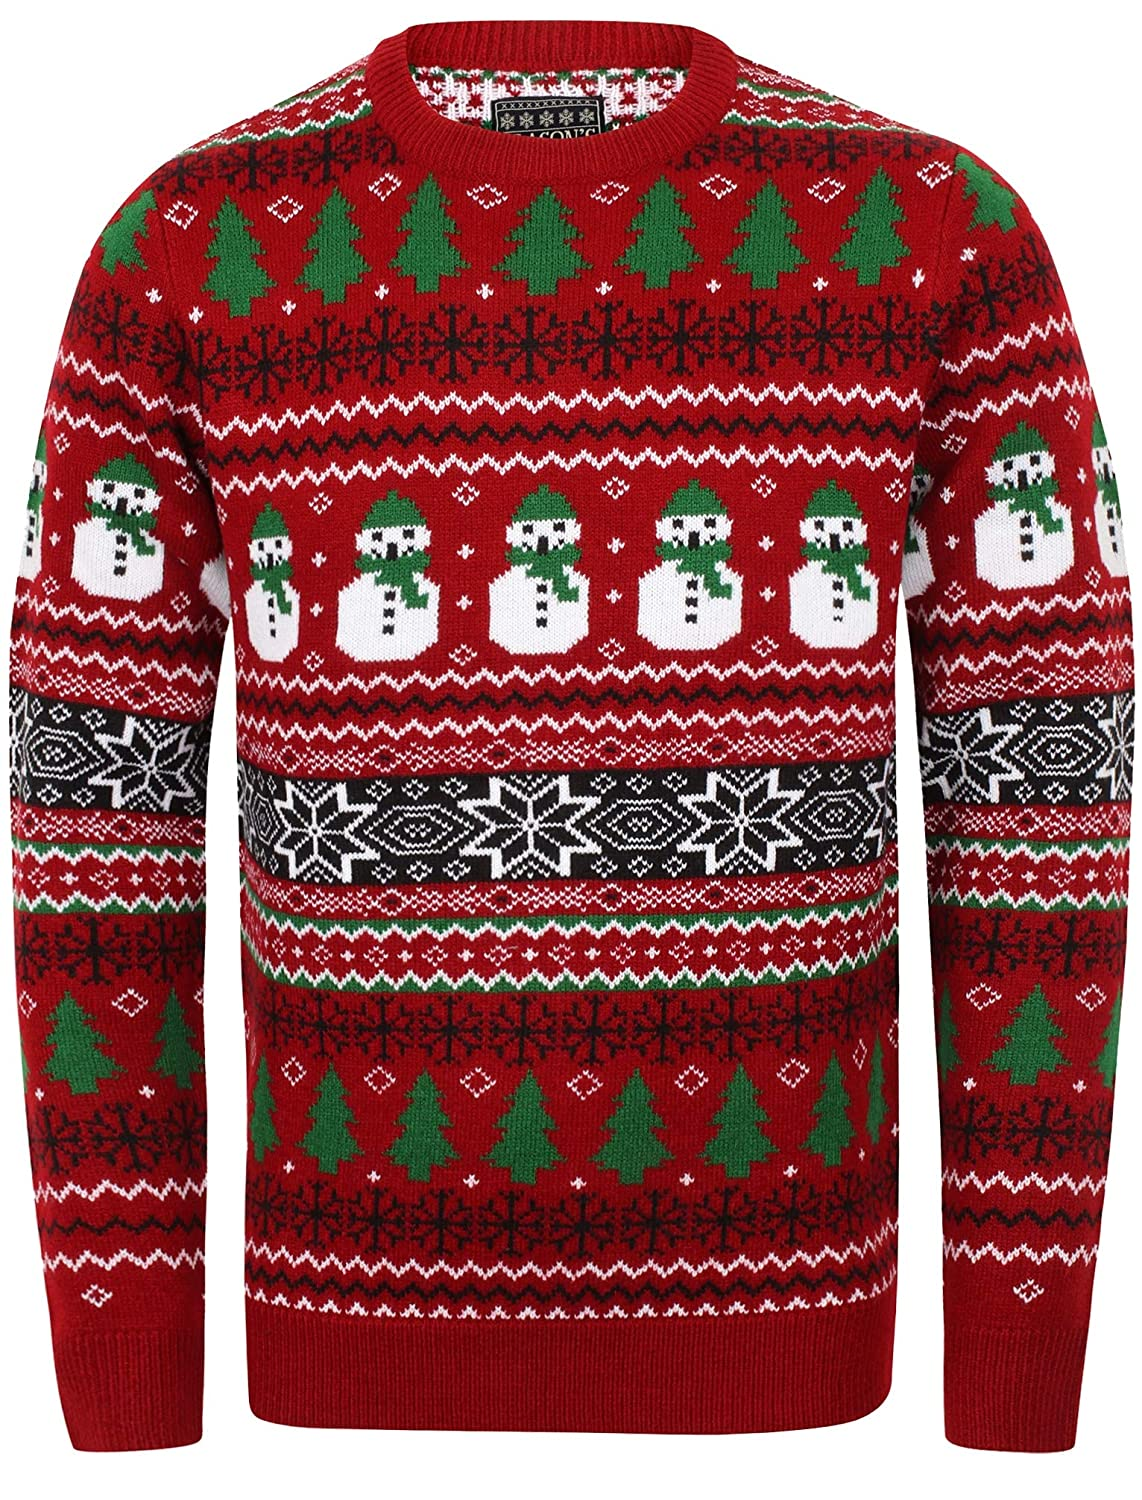 Season's Greetings Adults Traditional Style Knitted Christmas Sweater/Jumper